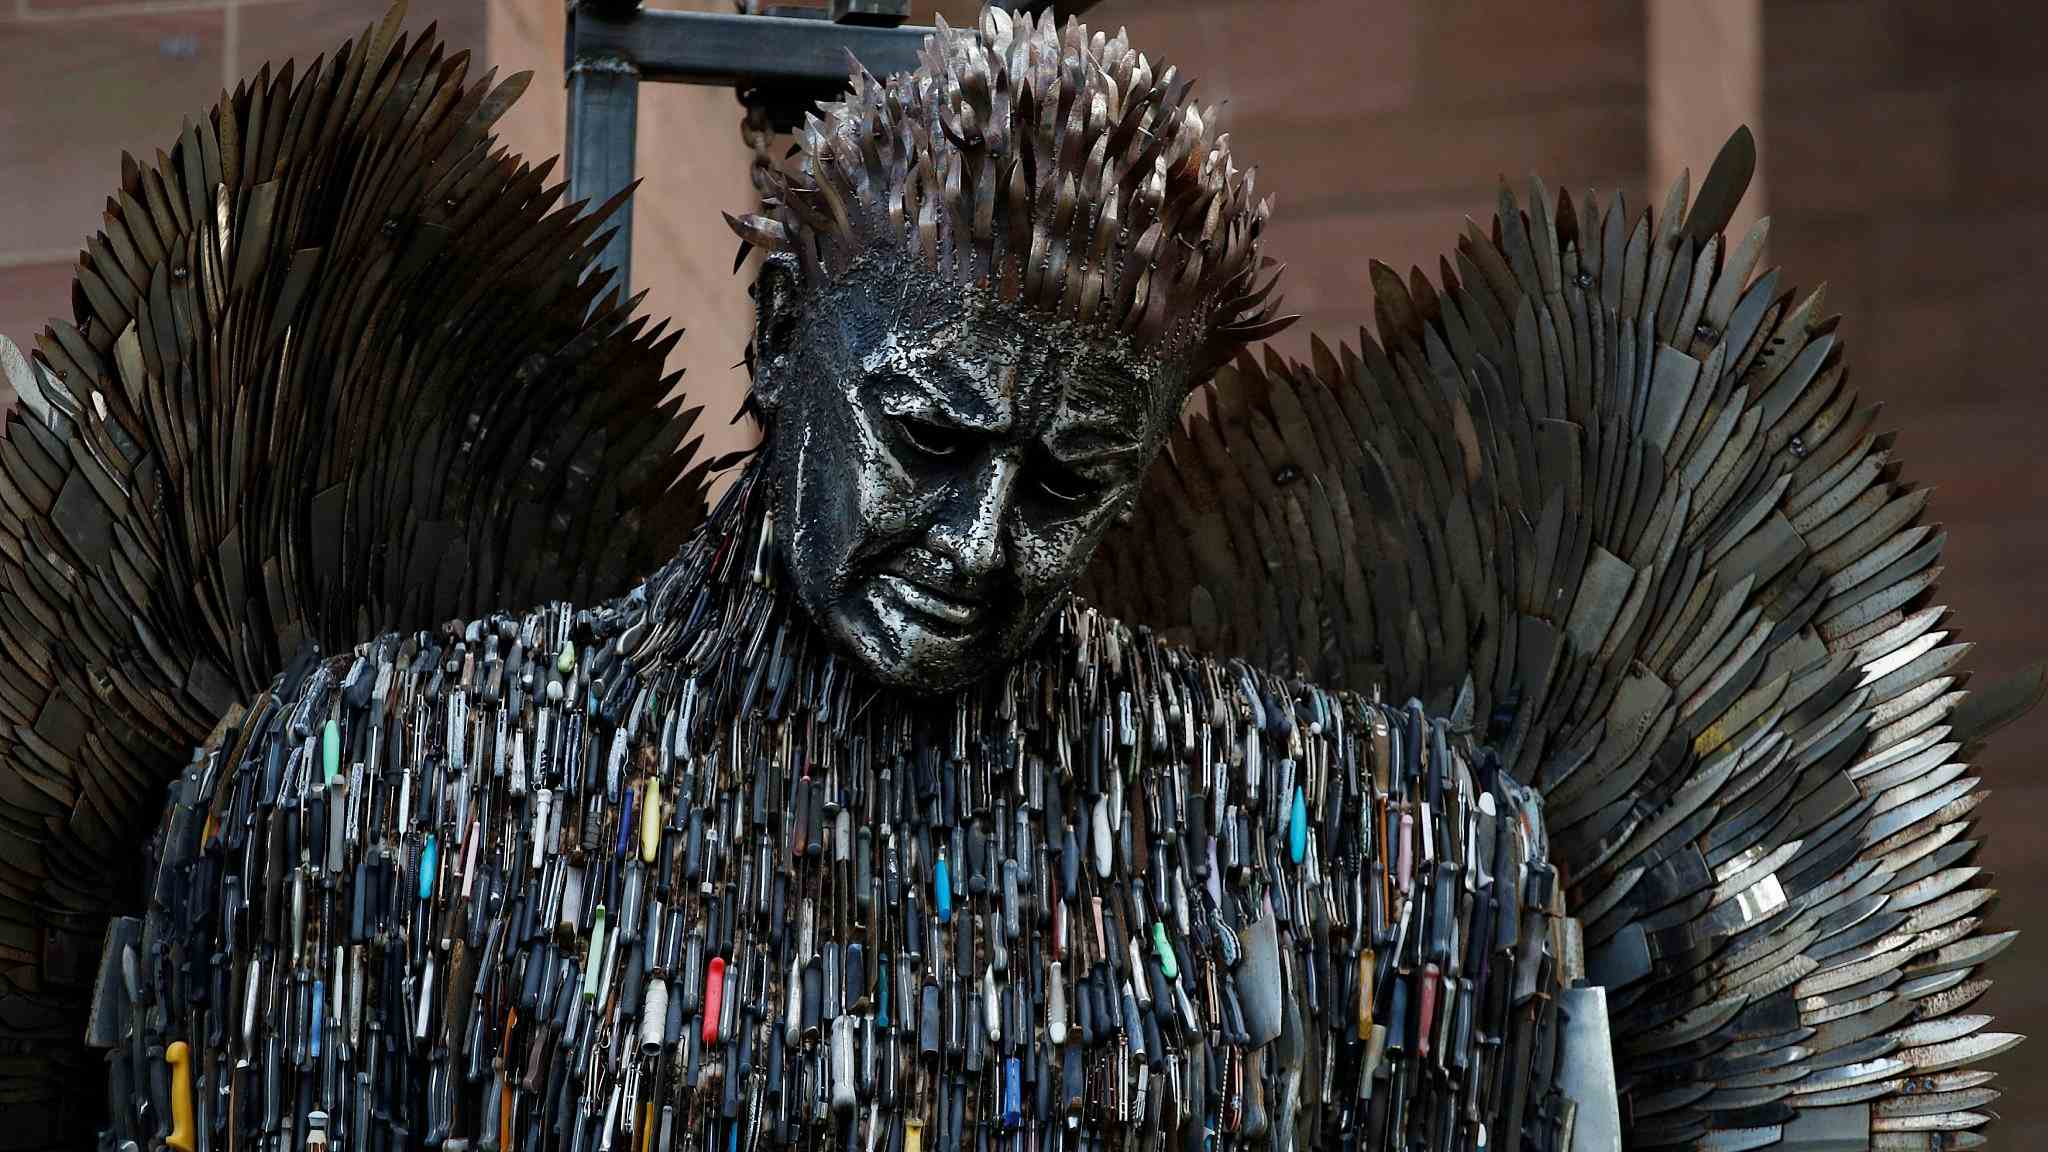 UK artist creates sculpture with 100,000 blades to highlight knife crime